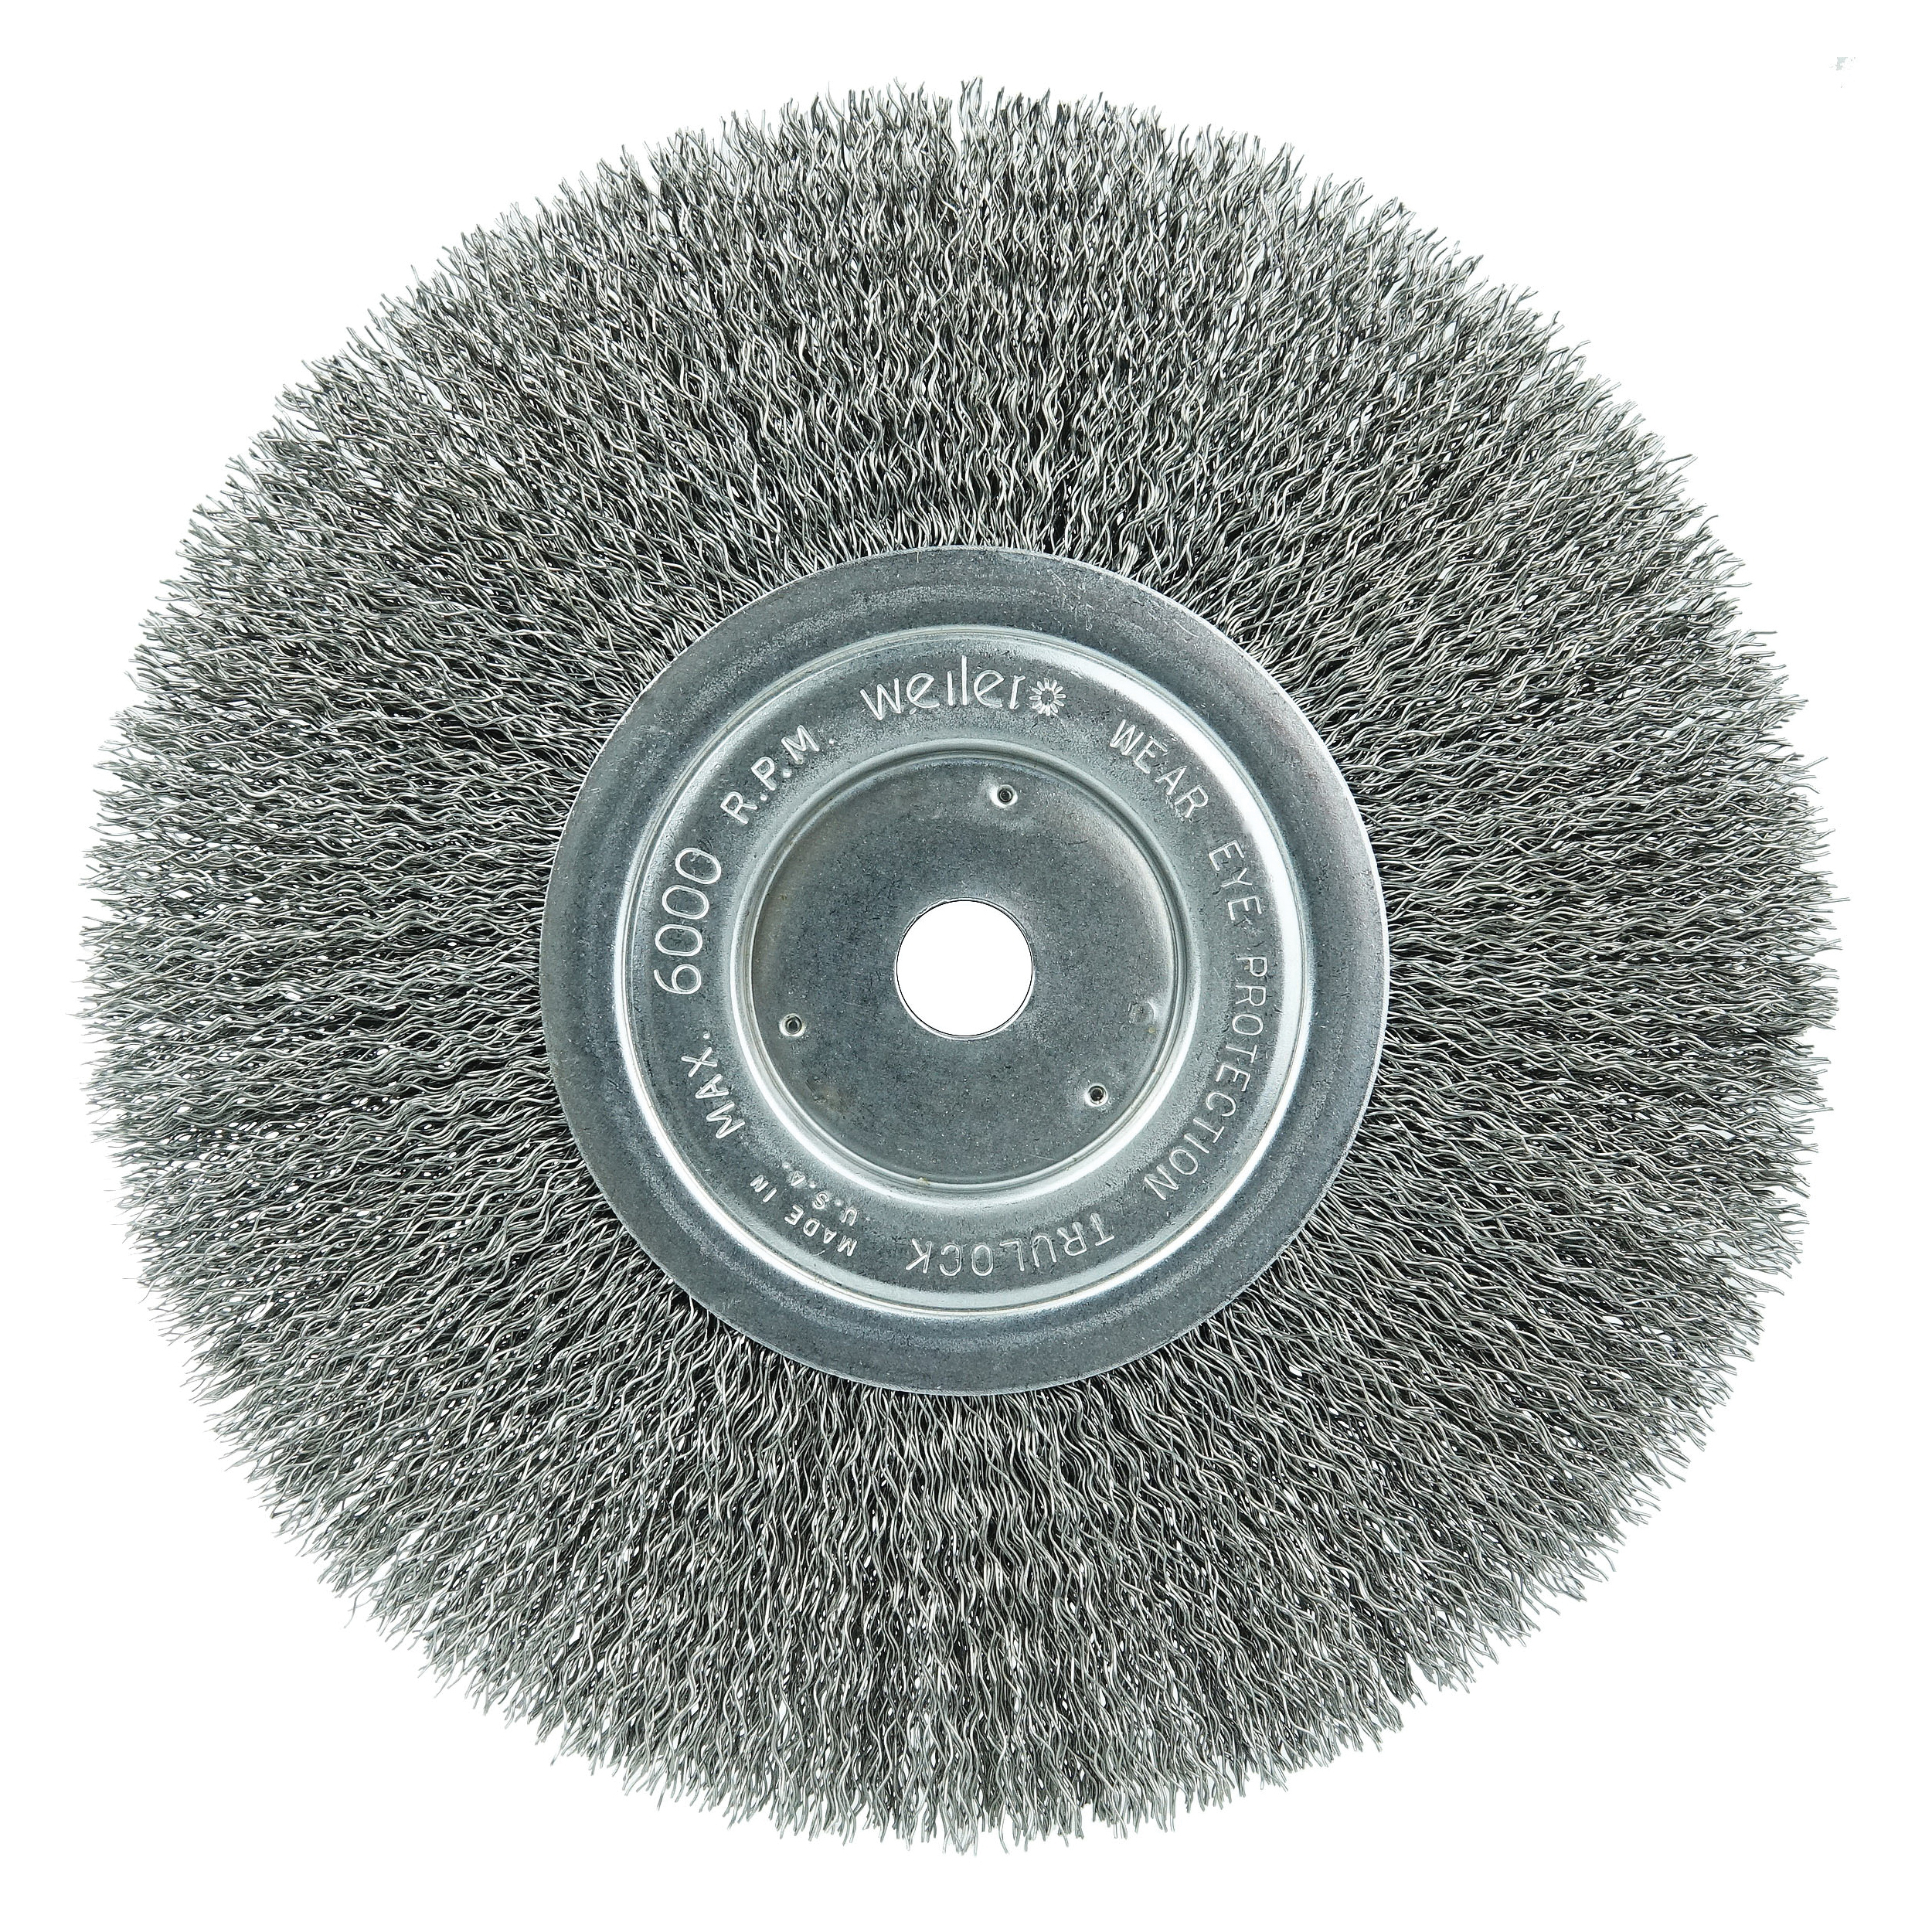 Weiler® 01075 Narrow Face Wheel Brush, 6 in Dia Brush, 3/4 in W Face, 0.014 in Dia Crimped Filament/Wire, 1/2 to 5/8 in Arbor Hole